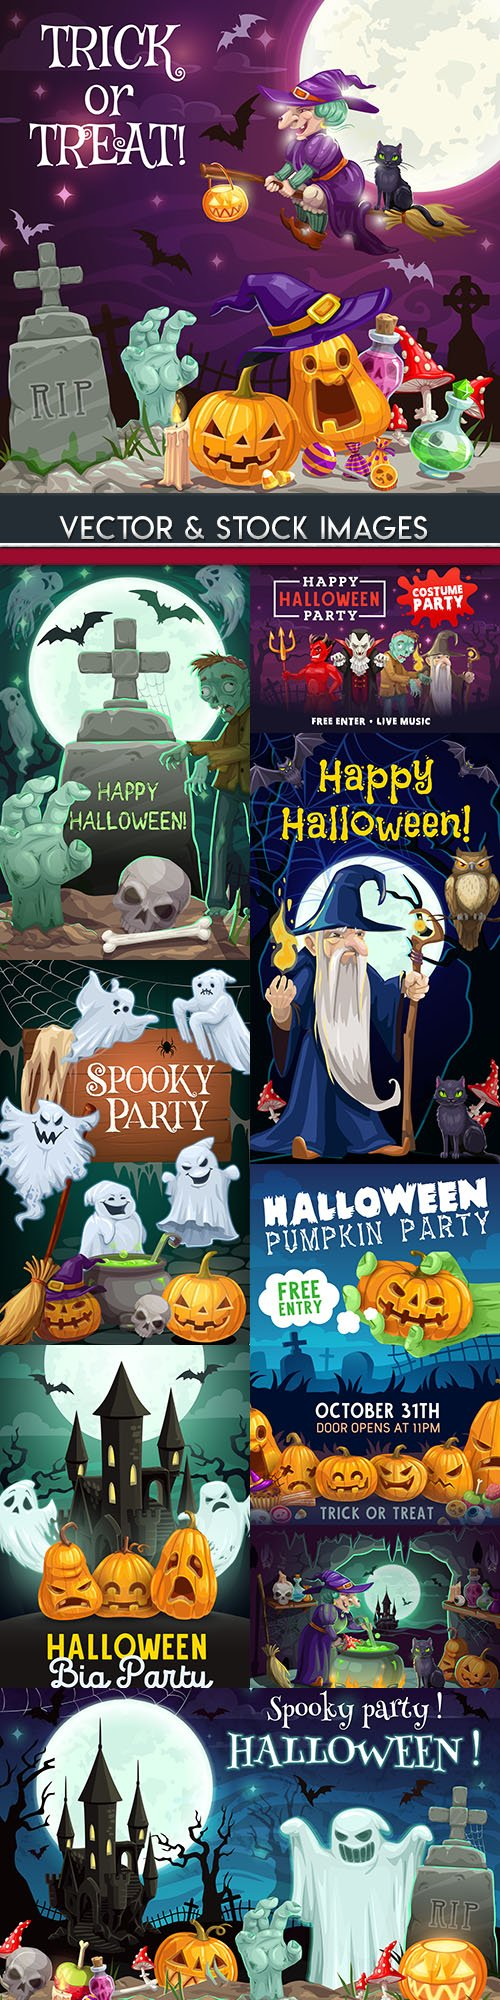 Happy Halloween holiday cartoon illustration collection 22